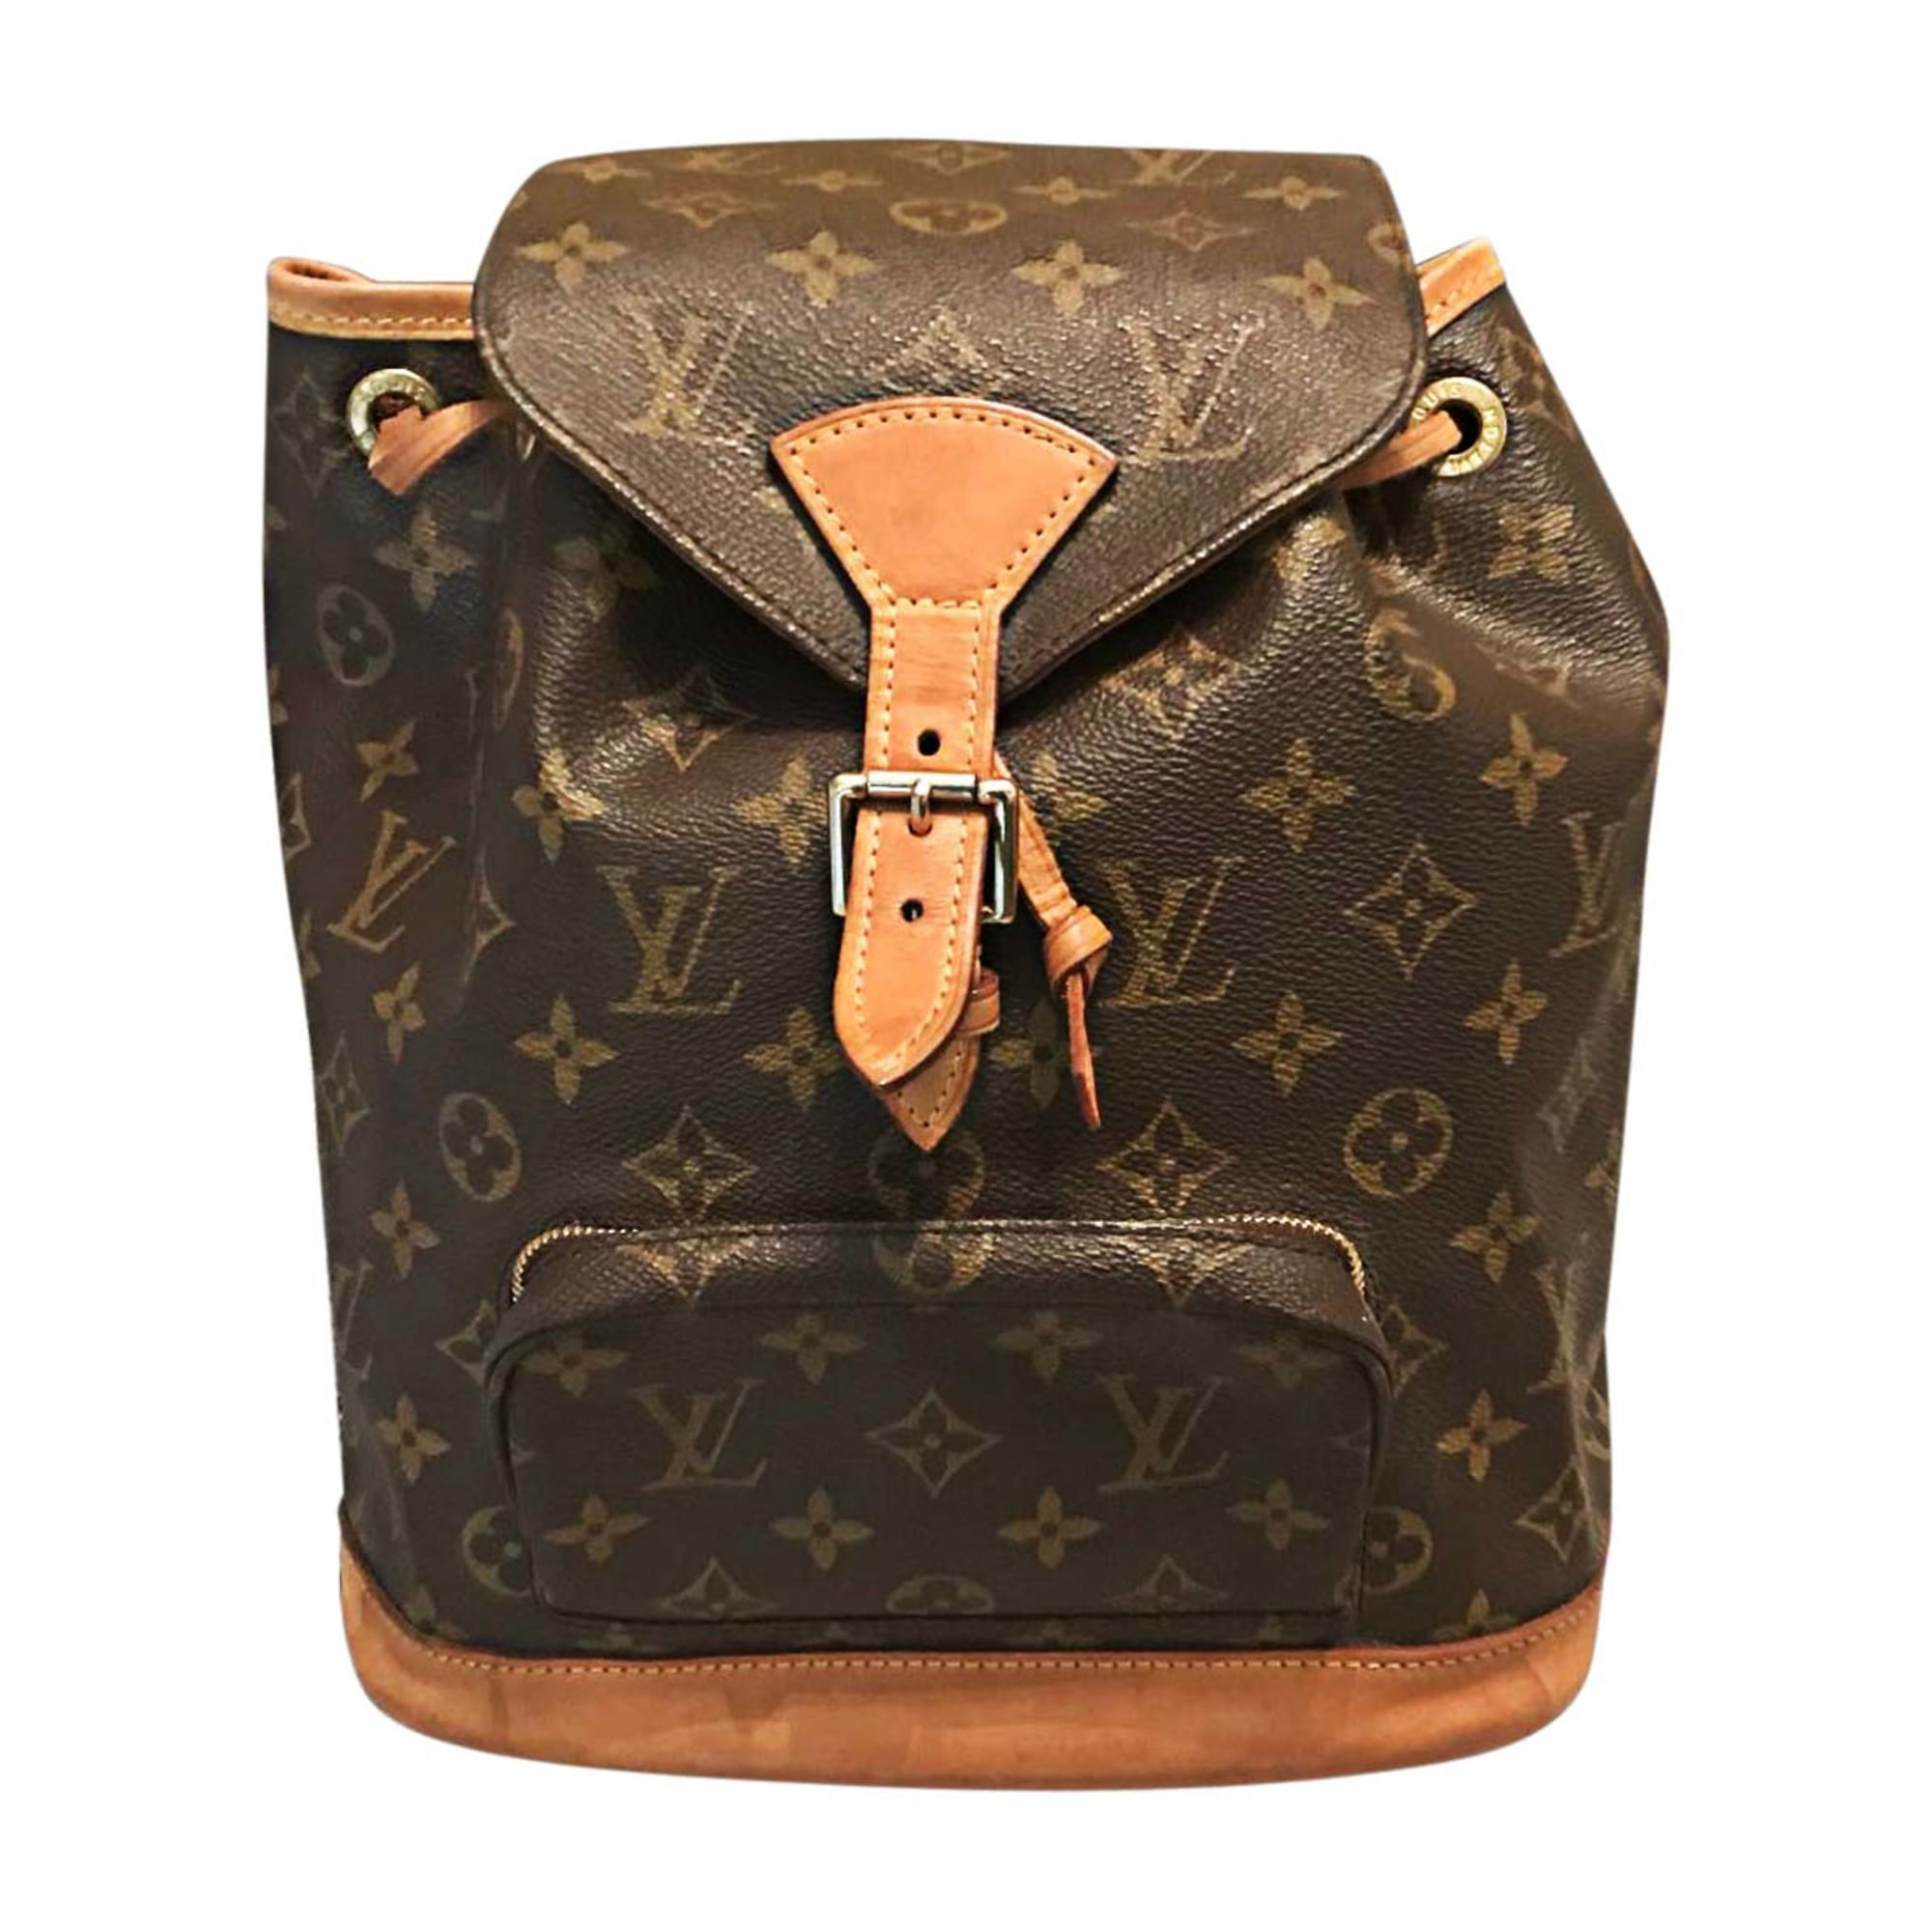 4e66d41e13 Zaino LOUIS VUITTON marrone vendu par Fatiti 4 - 7282357